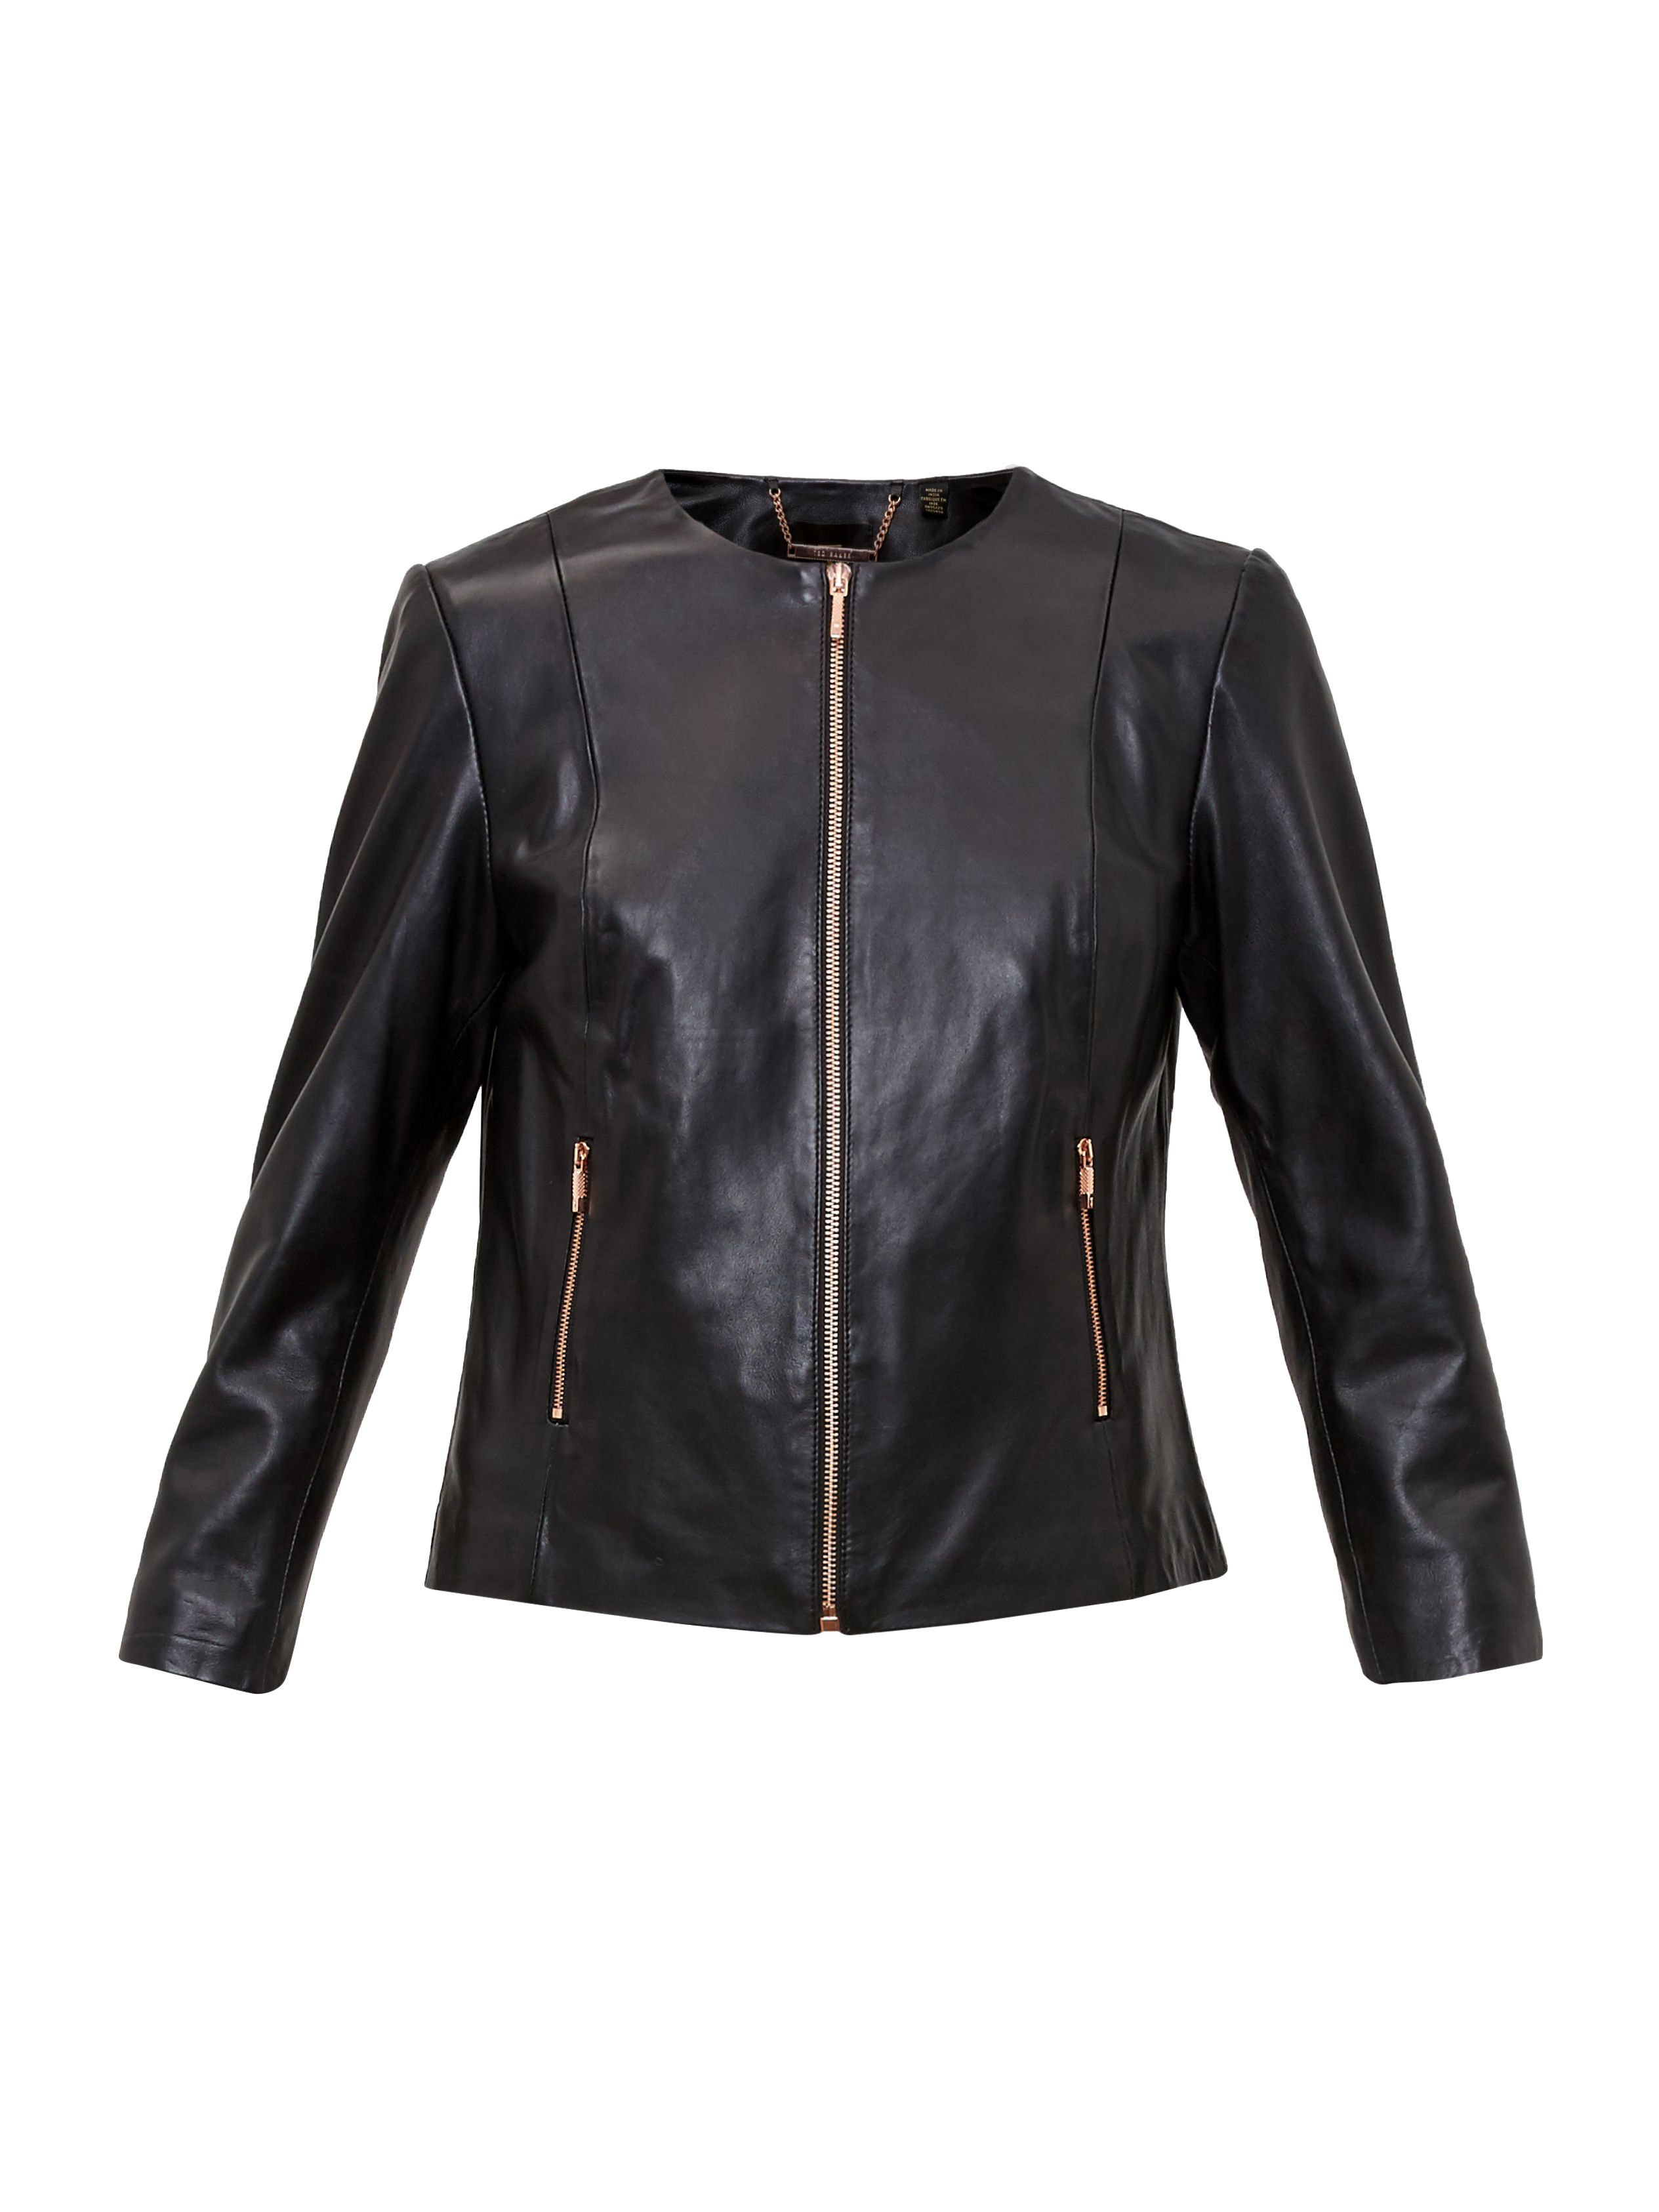 Ted Baker Fai Collarless Leather Jacket, Black